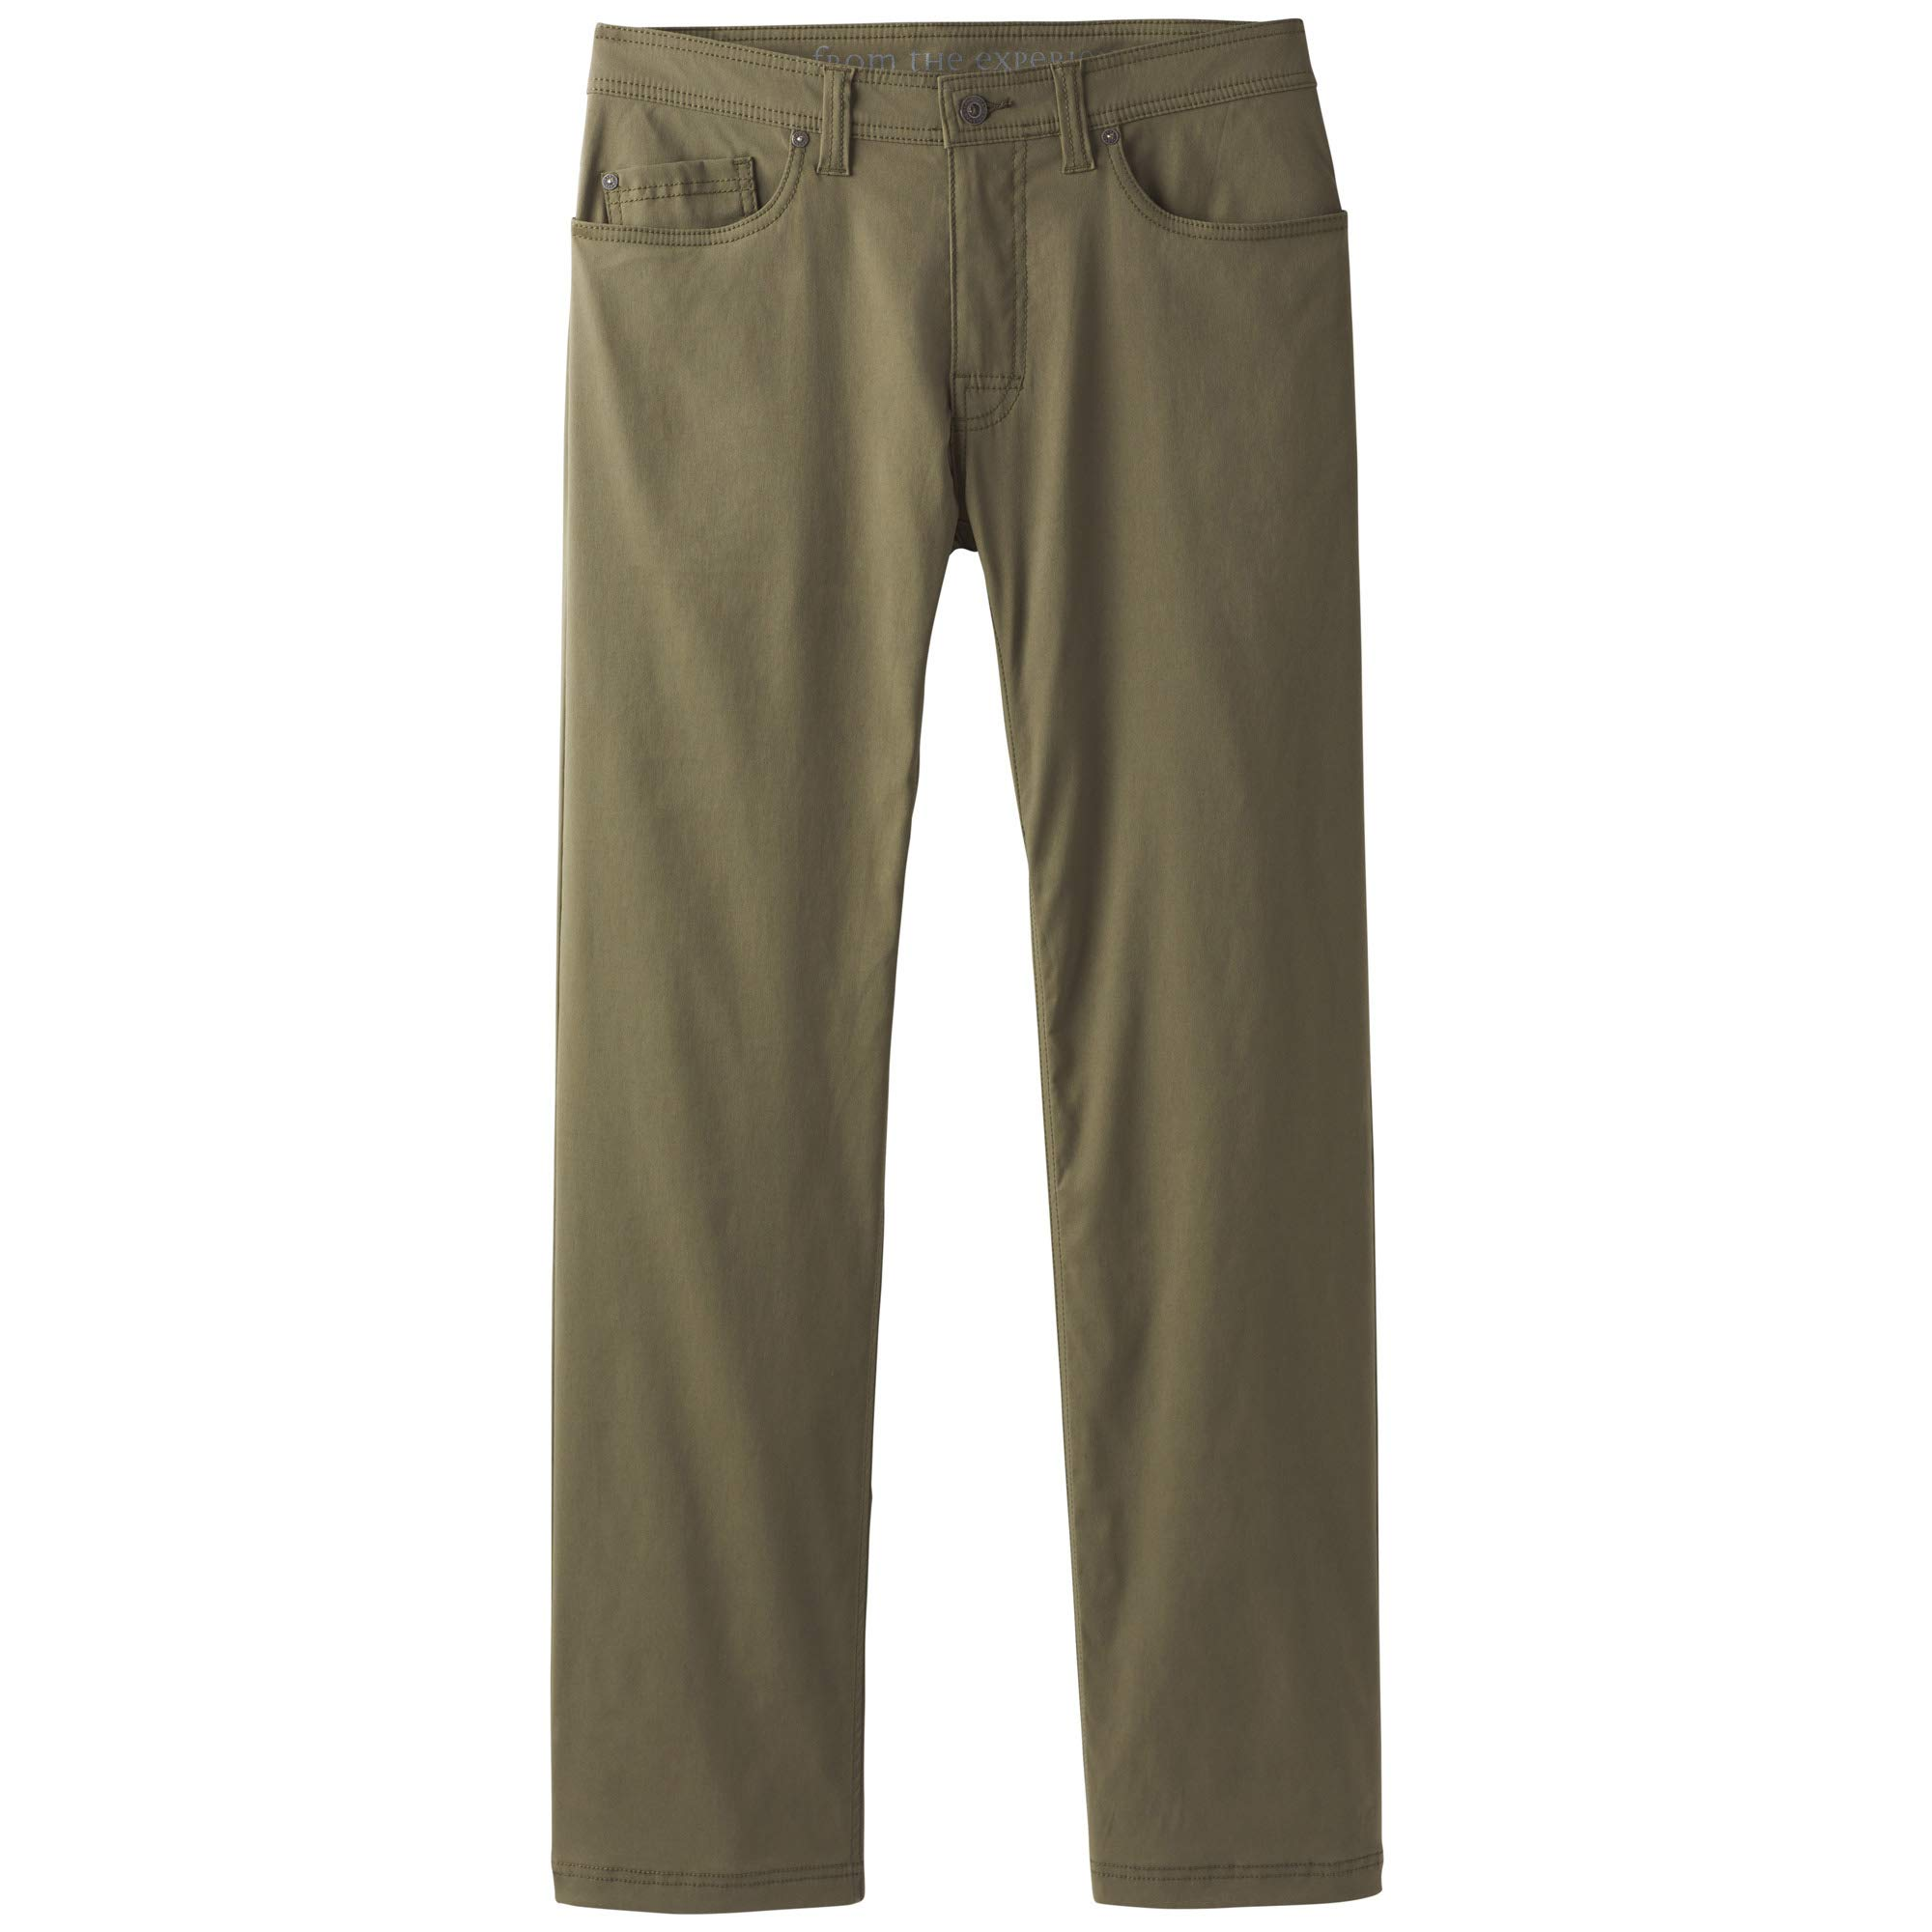 prAna Men's Brion Pant 32'' Inseam, Cargo Green, 28